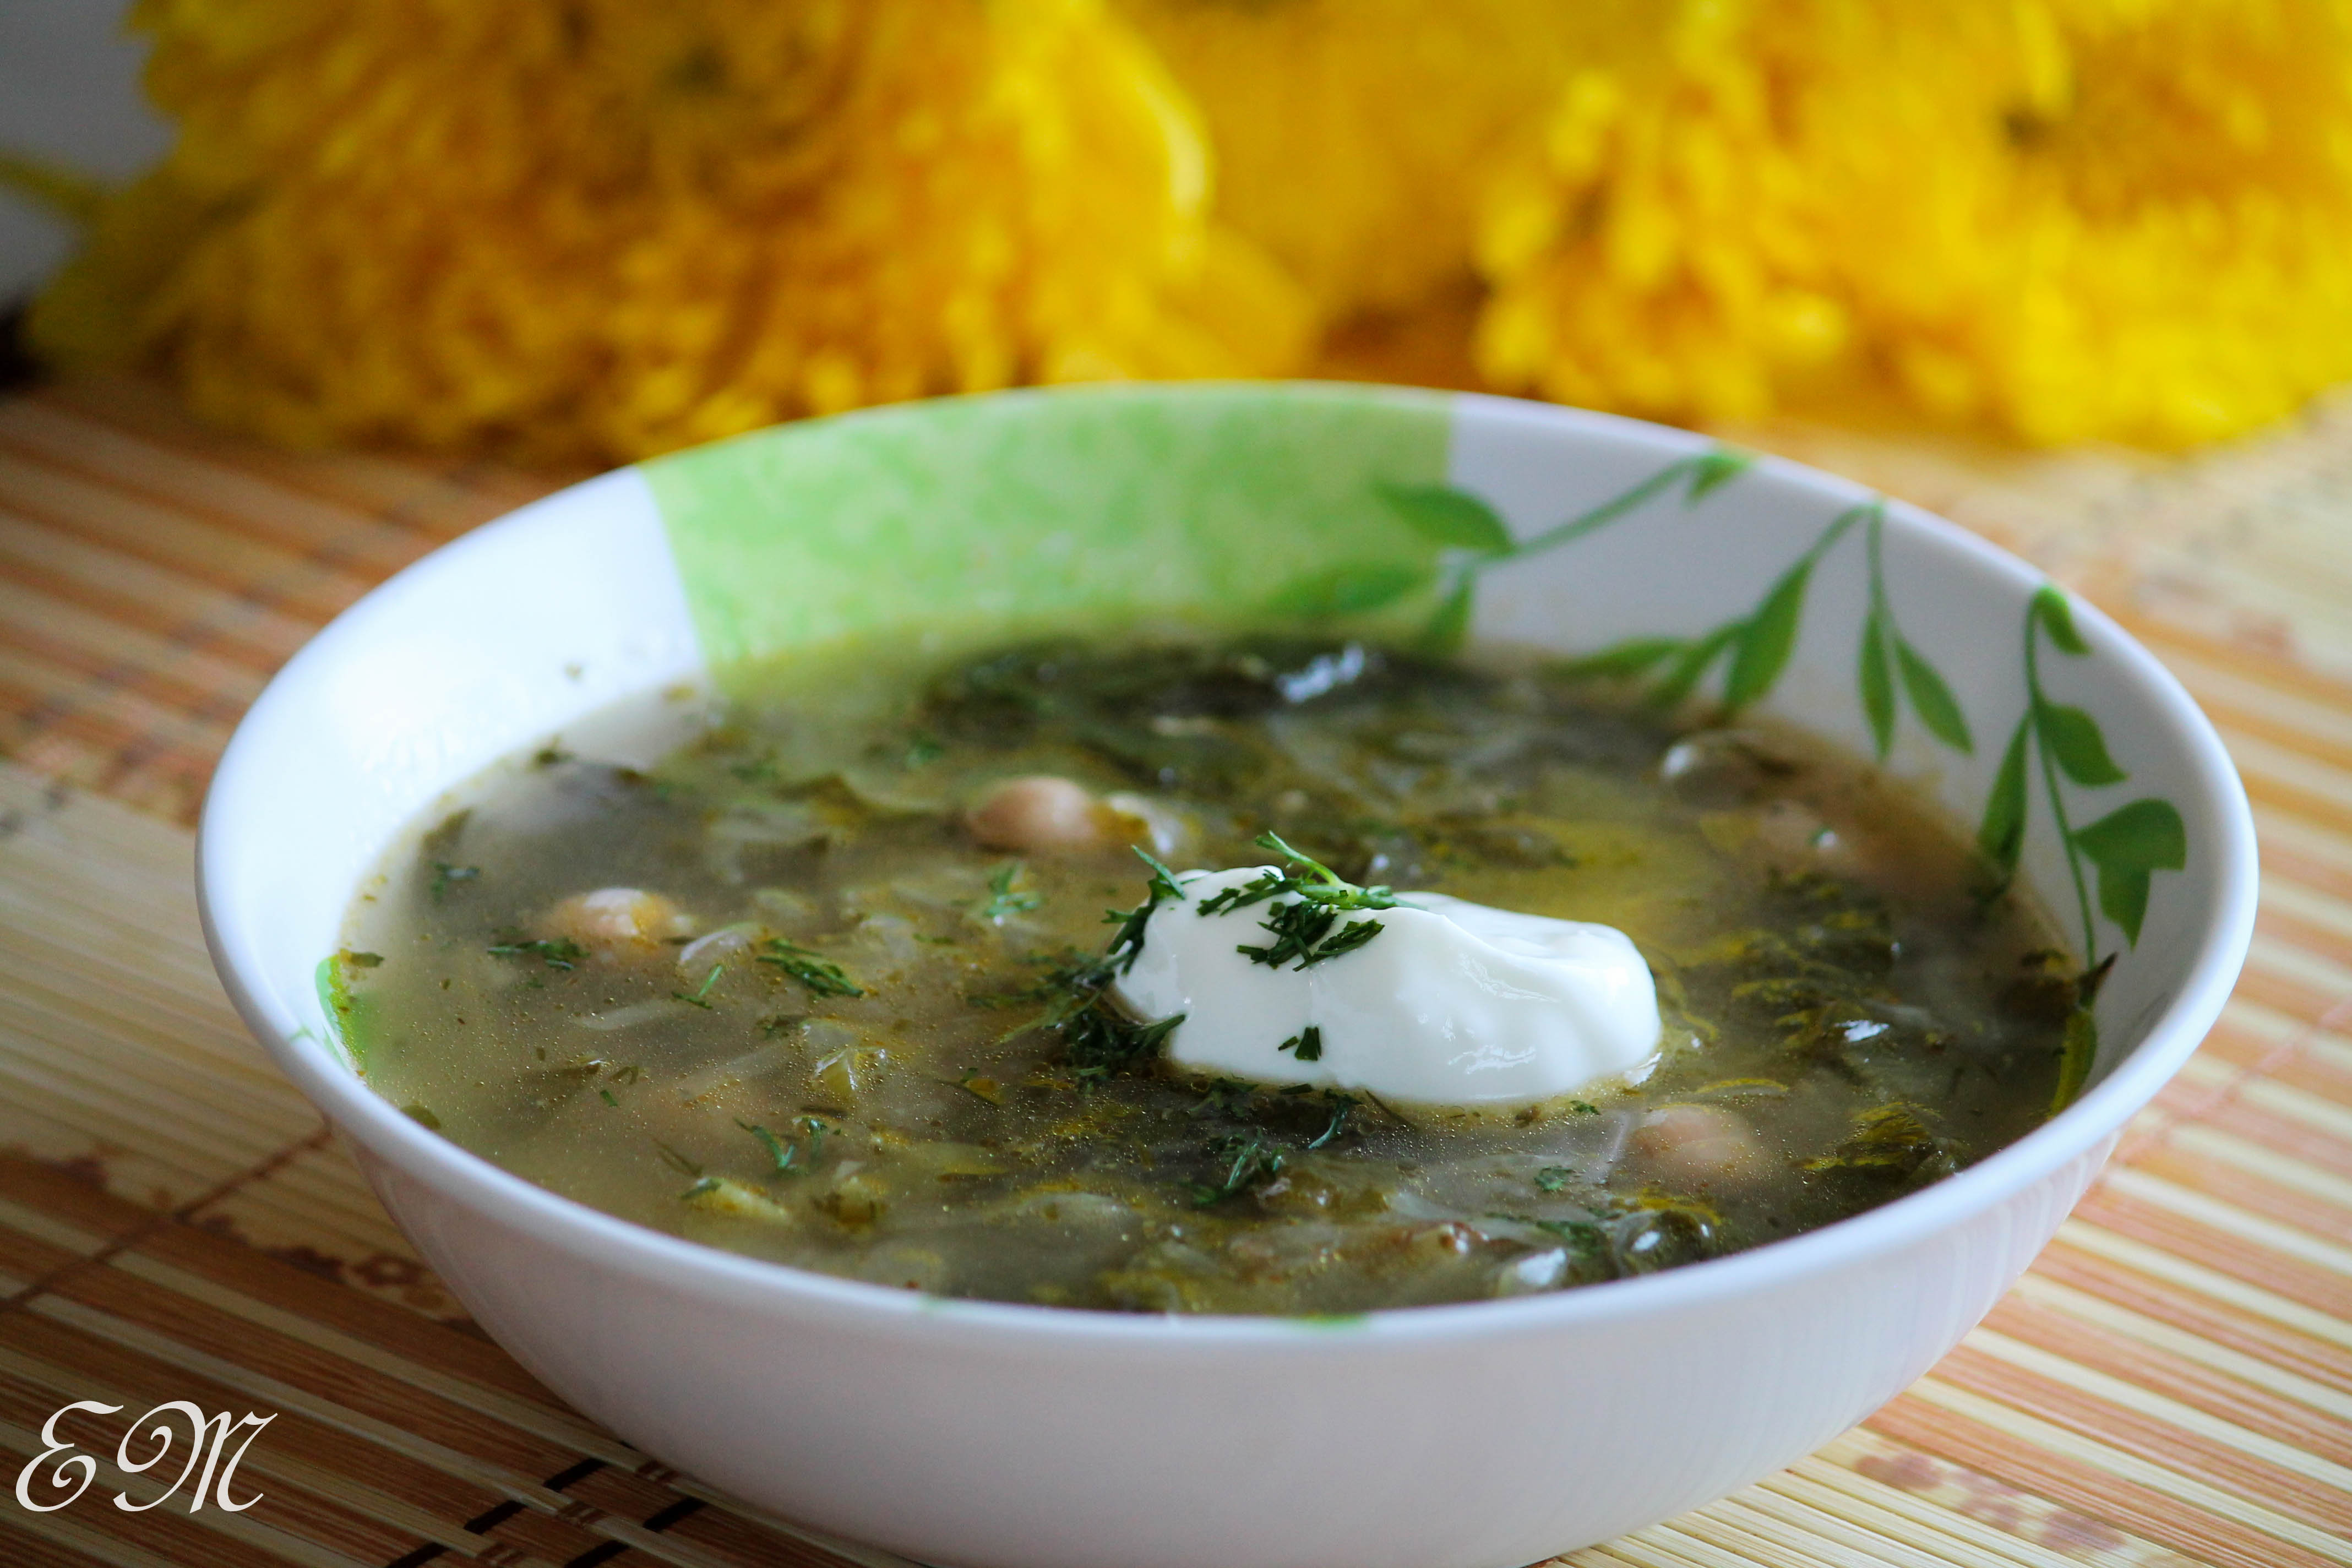 How to cook green borsch with sorrel